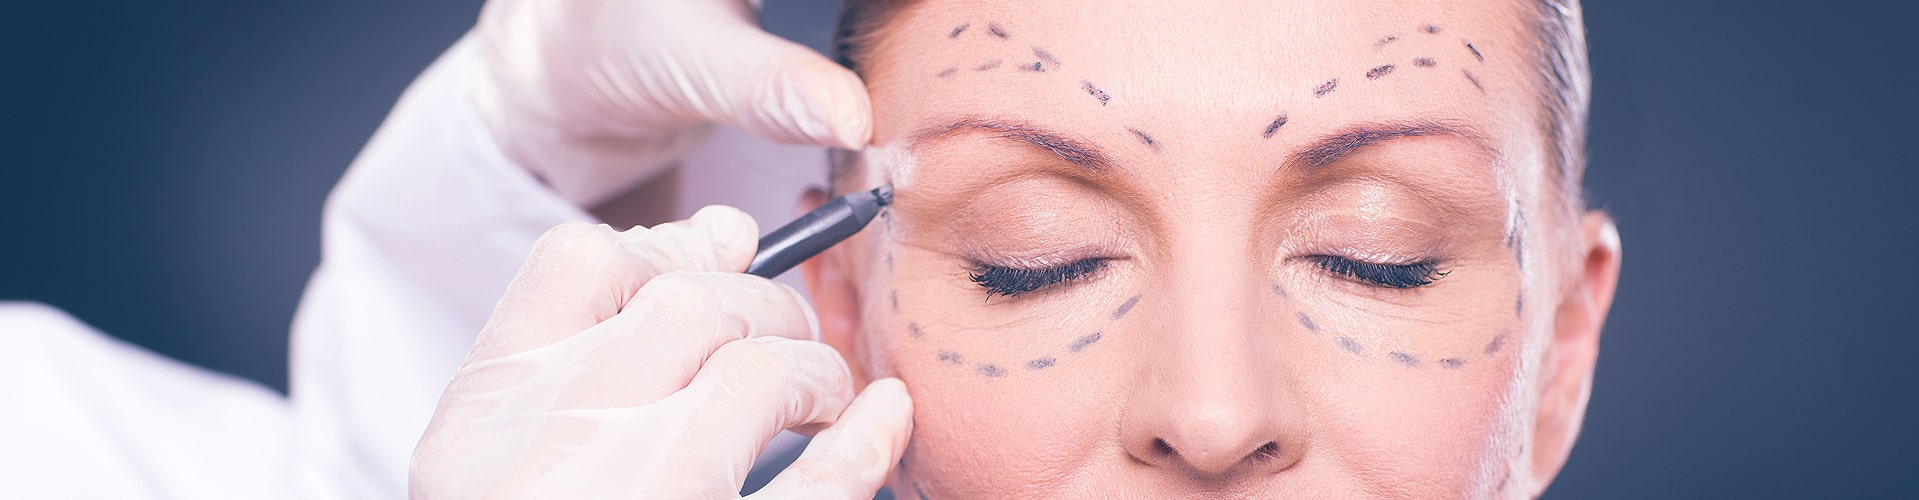 Best Solicitor for Cosmetic Surgery Claims in UK